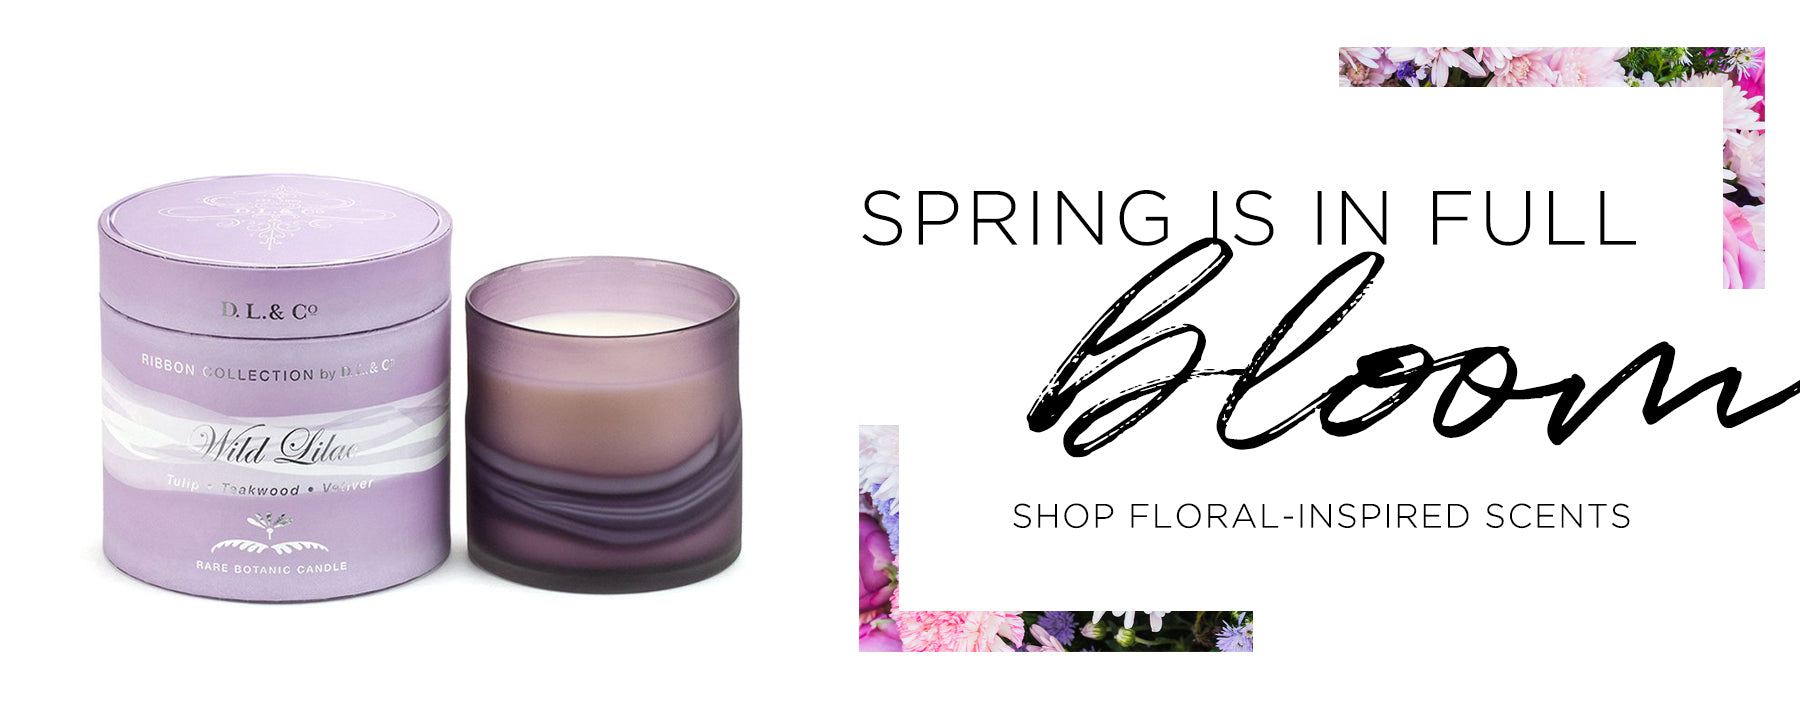 Spring is in full bloom. Shop floral-inspired scents.